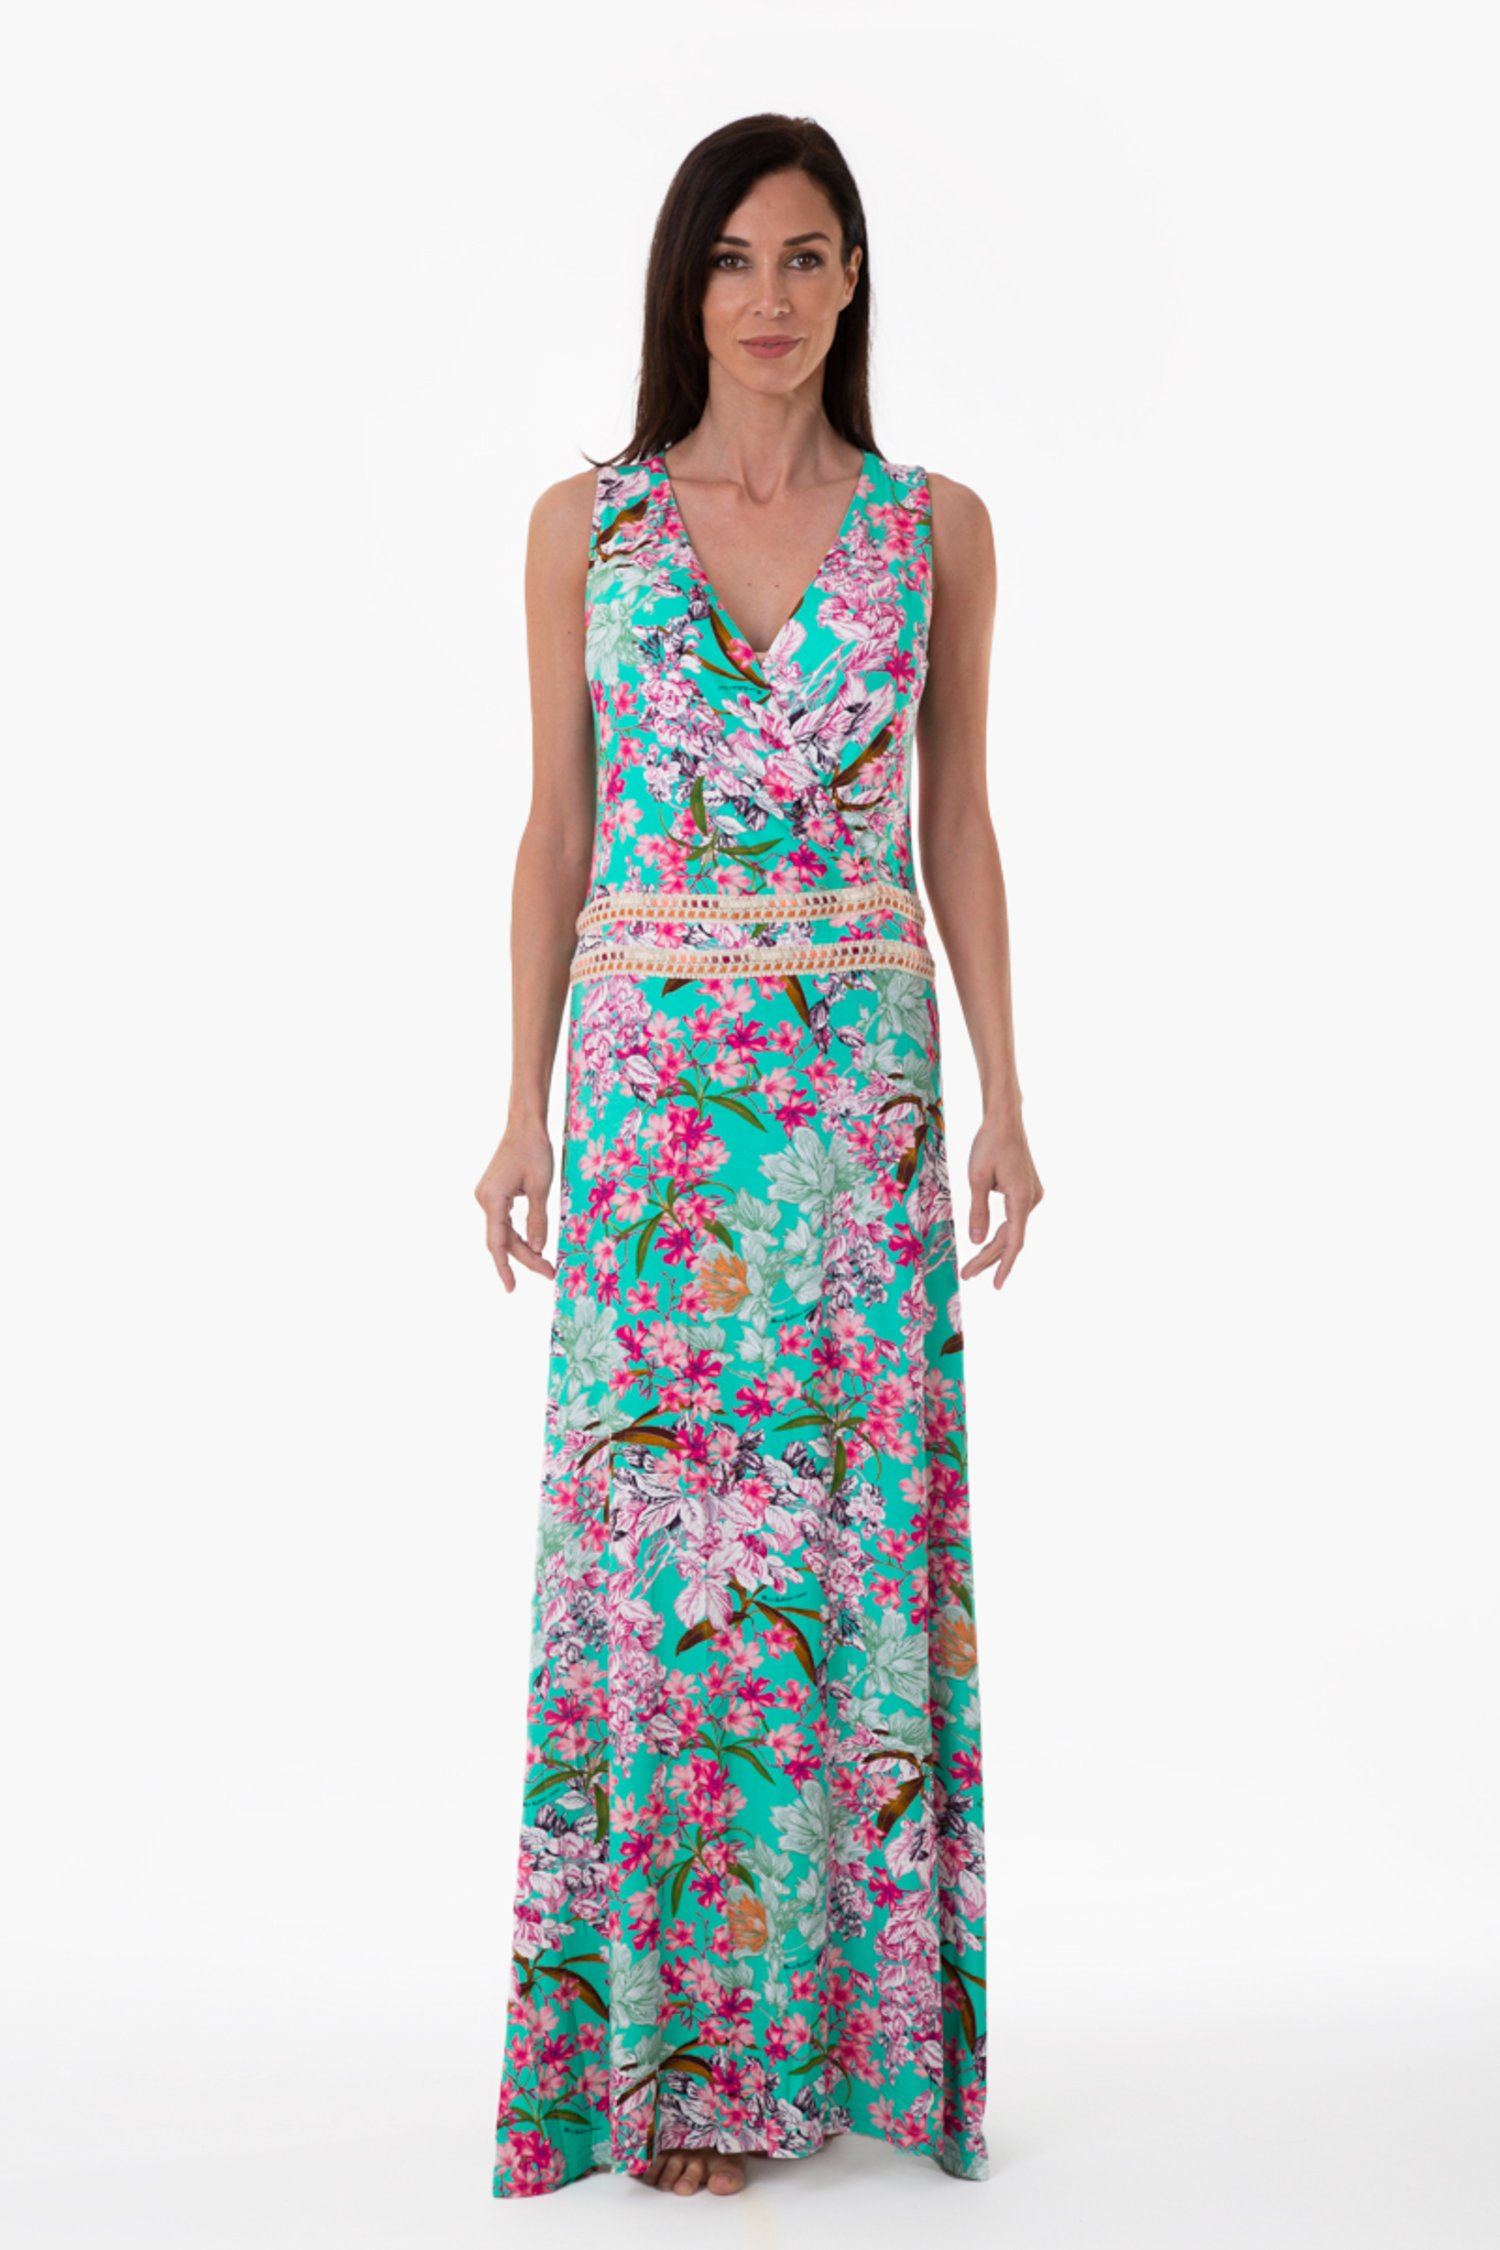 LUXE PRINTED LONG DRESS WITH WAIST TRIMMING - Fiori Azzurro